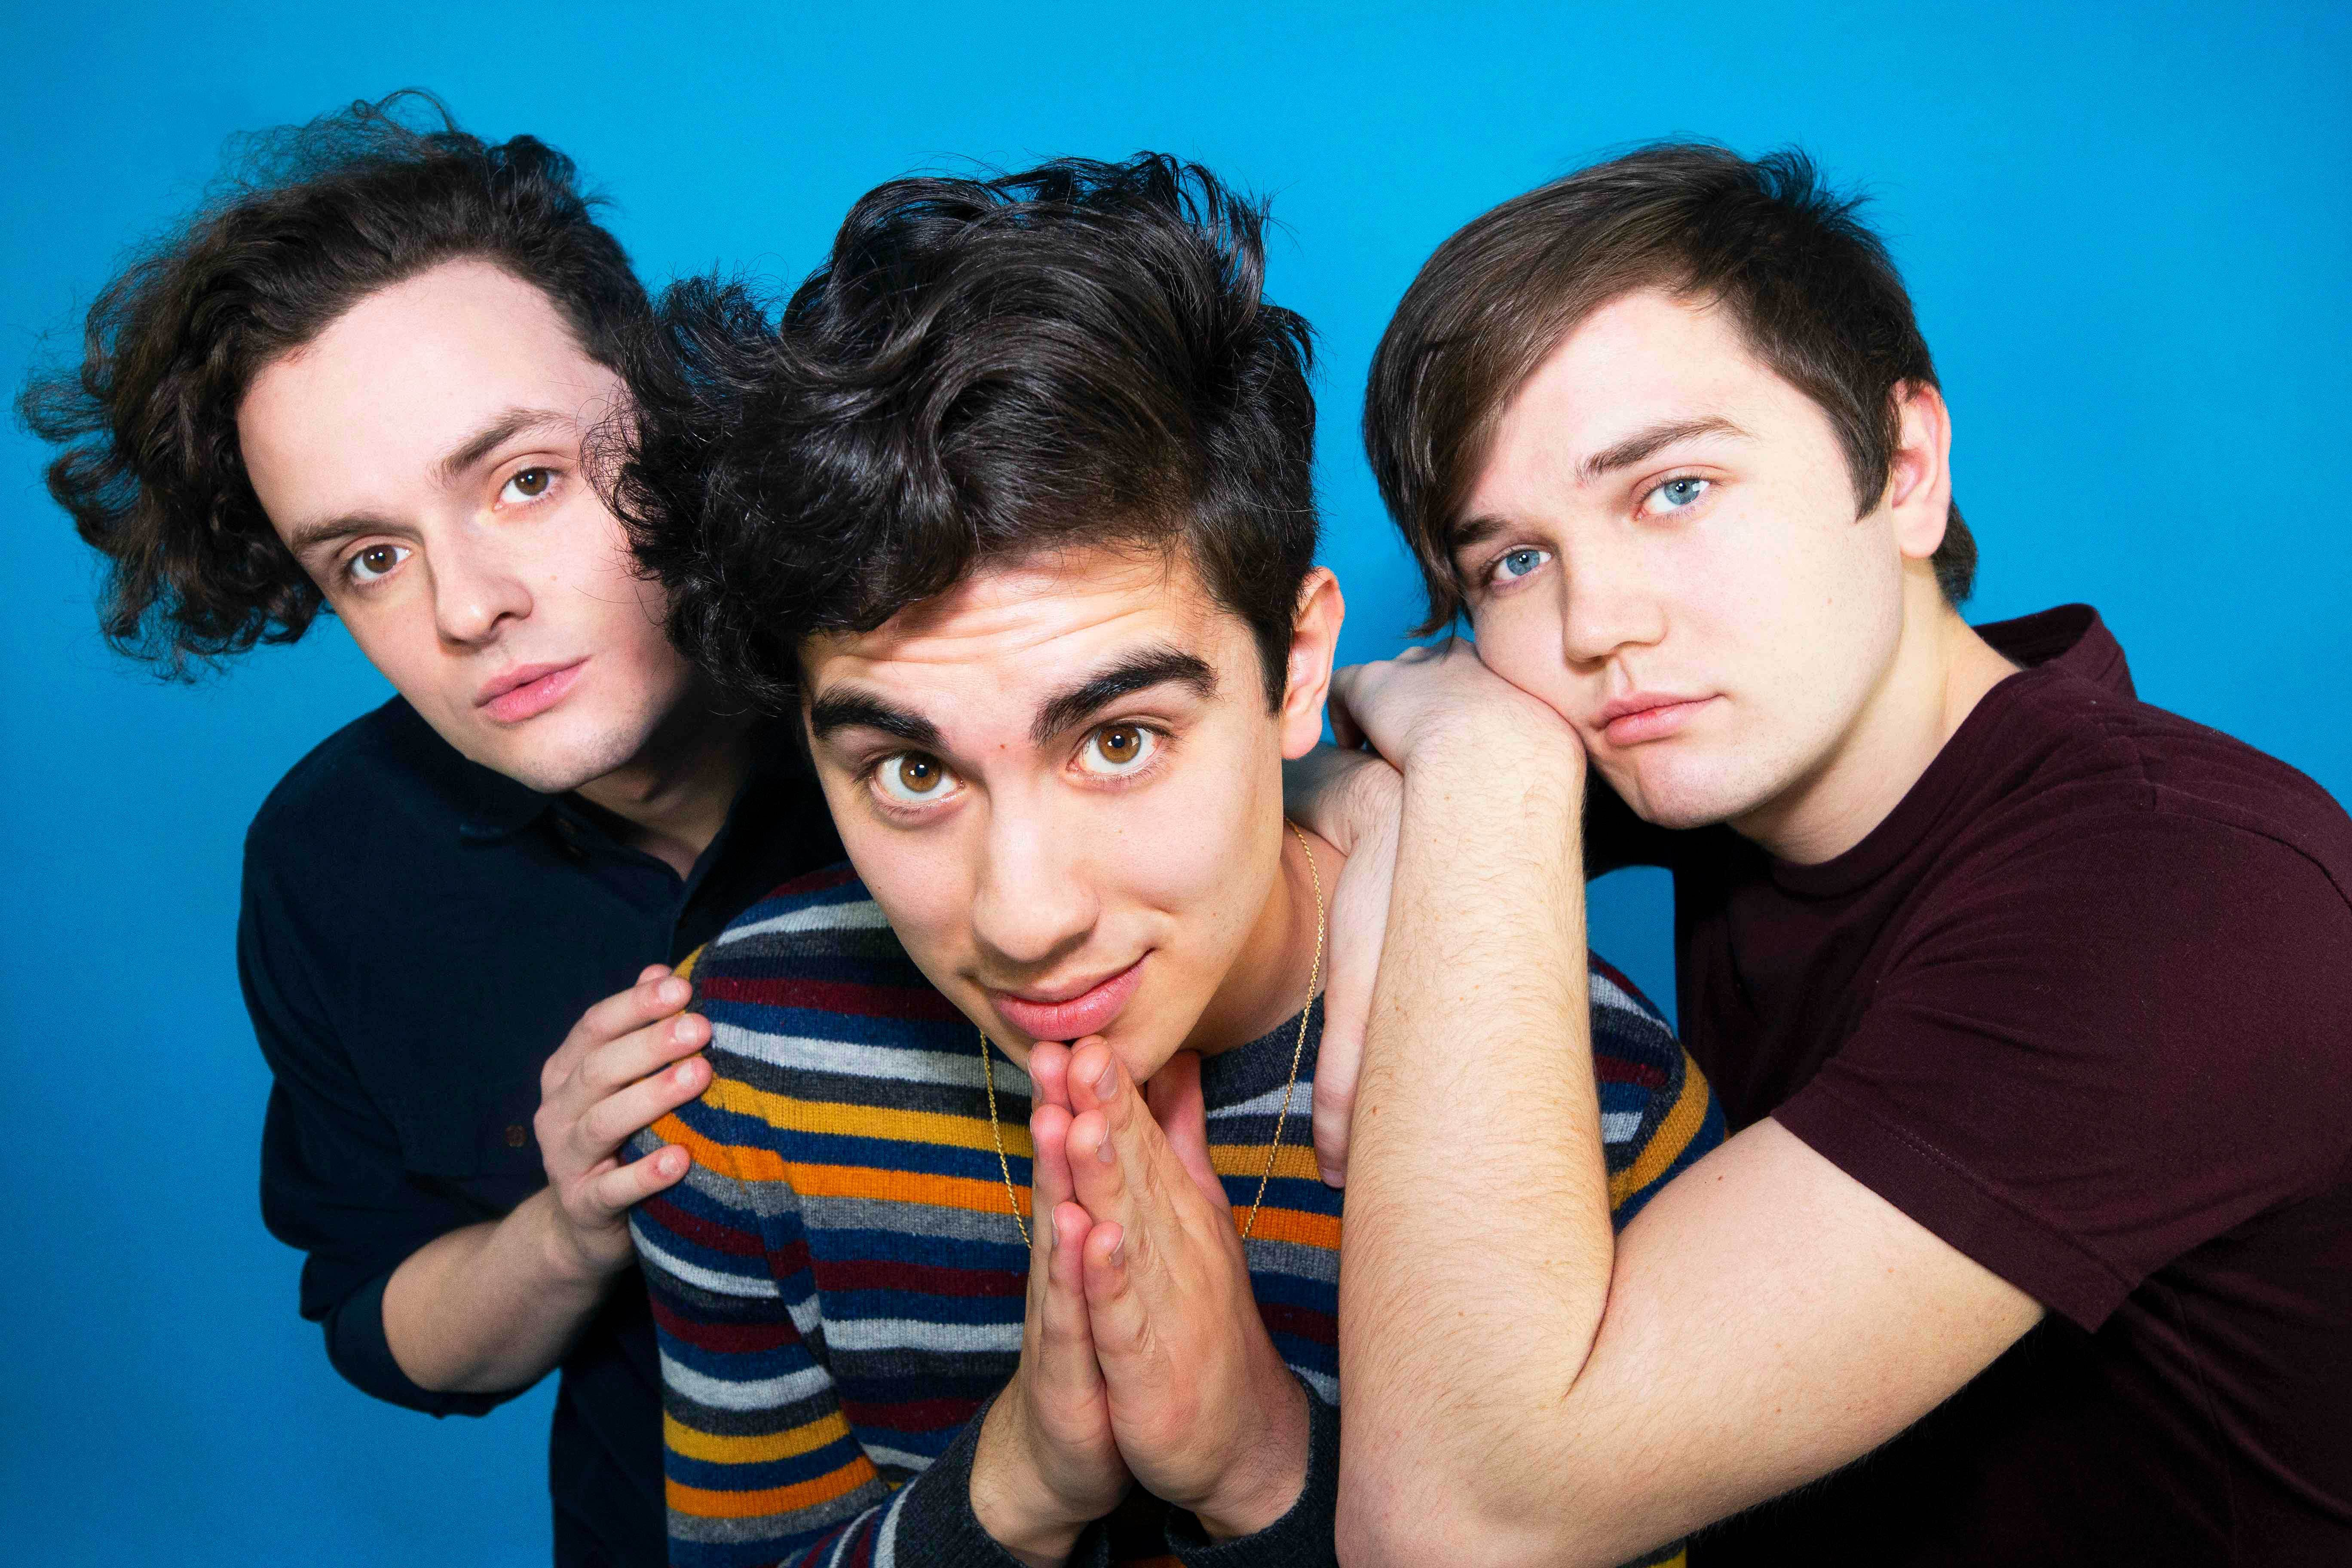 """The Happy Fits Release New Single """"Another Try"""" With B-side """"Cold Turkey"""""""